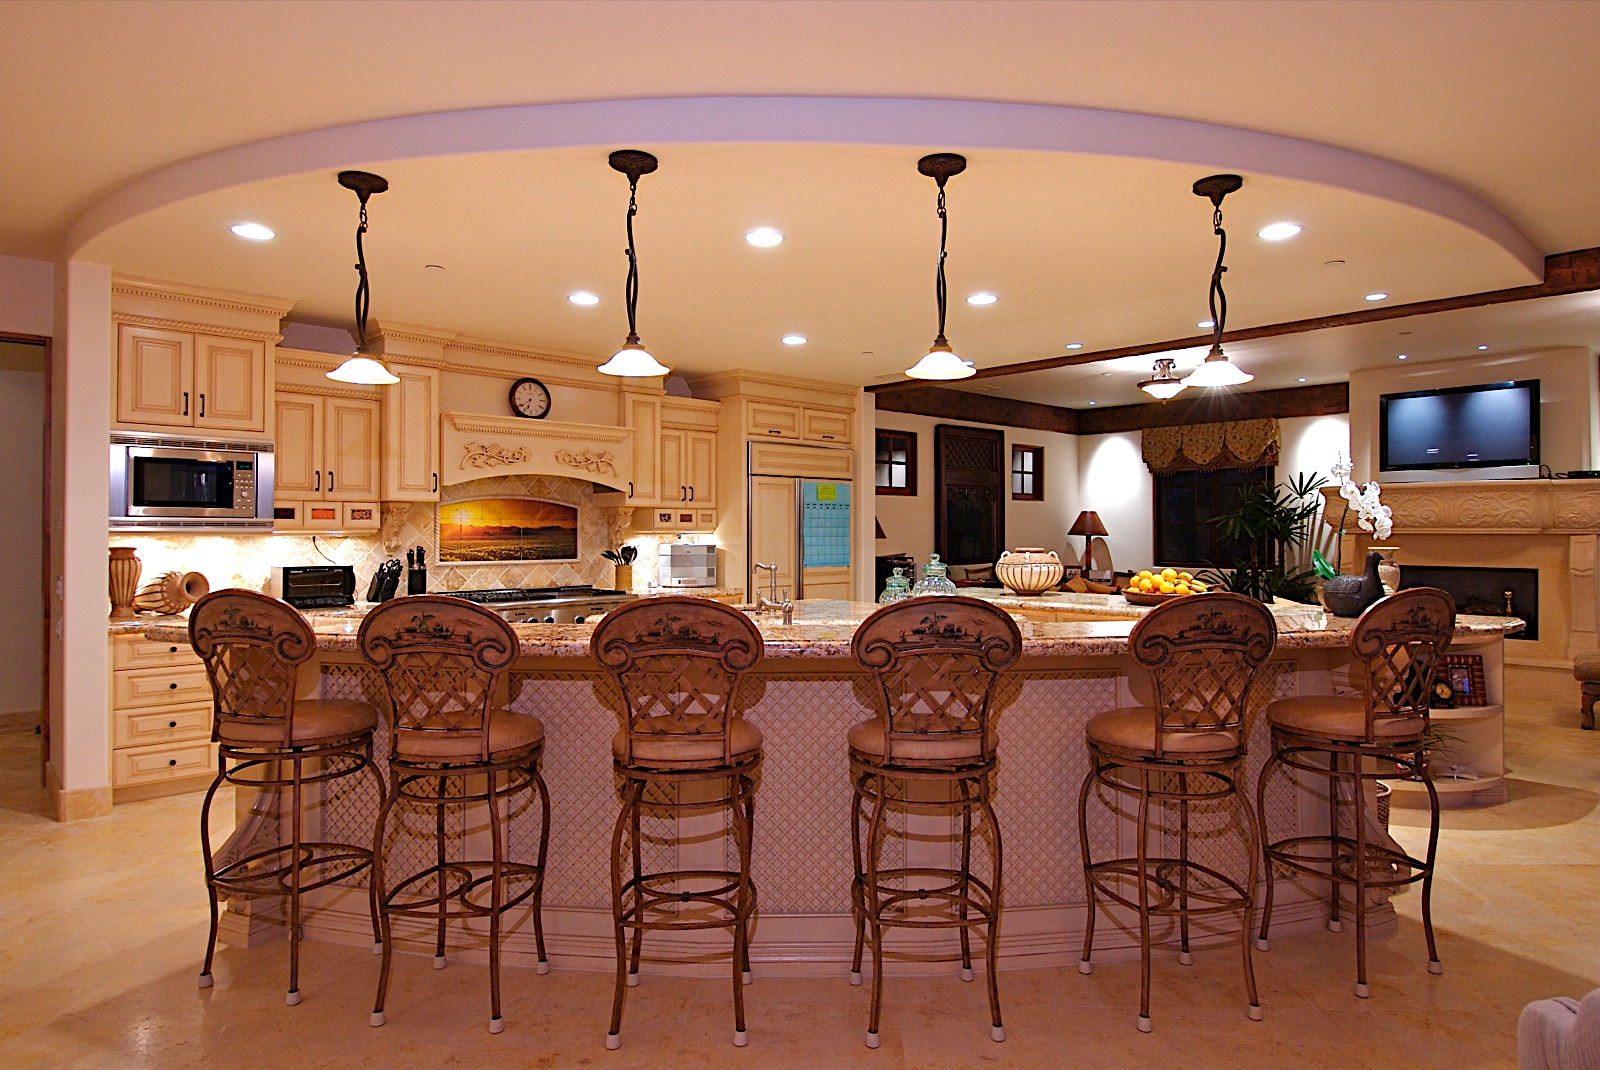 Kitchen Designs with Islands Black Floral Hanging Lamps Brown Steel Chairs Cream Ornamnetd Cabbinets